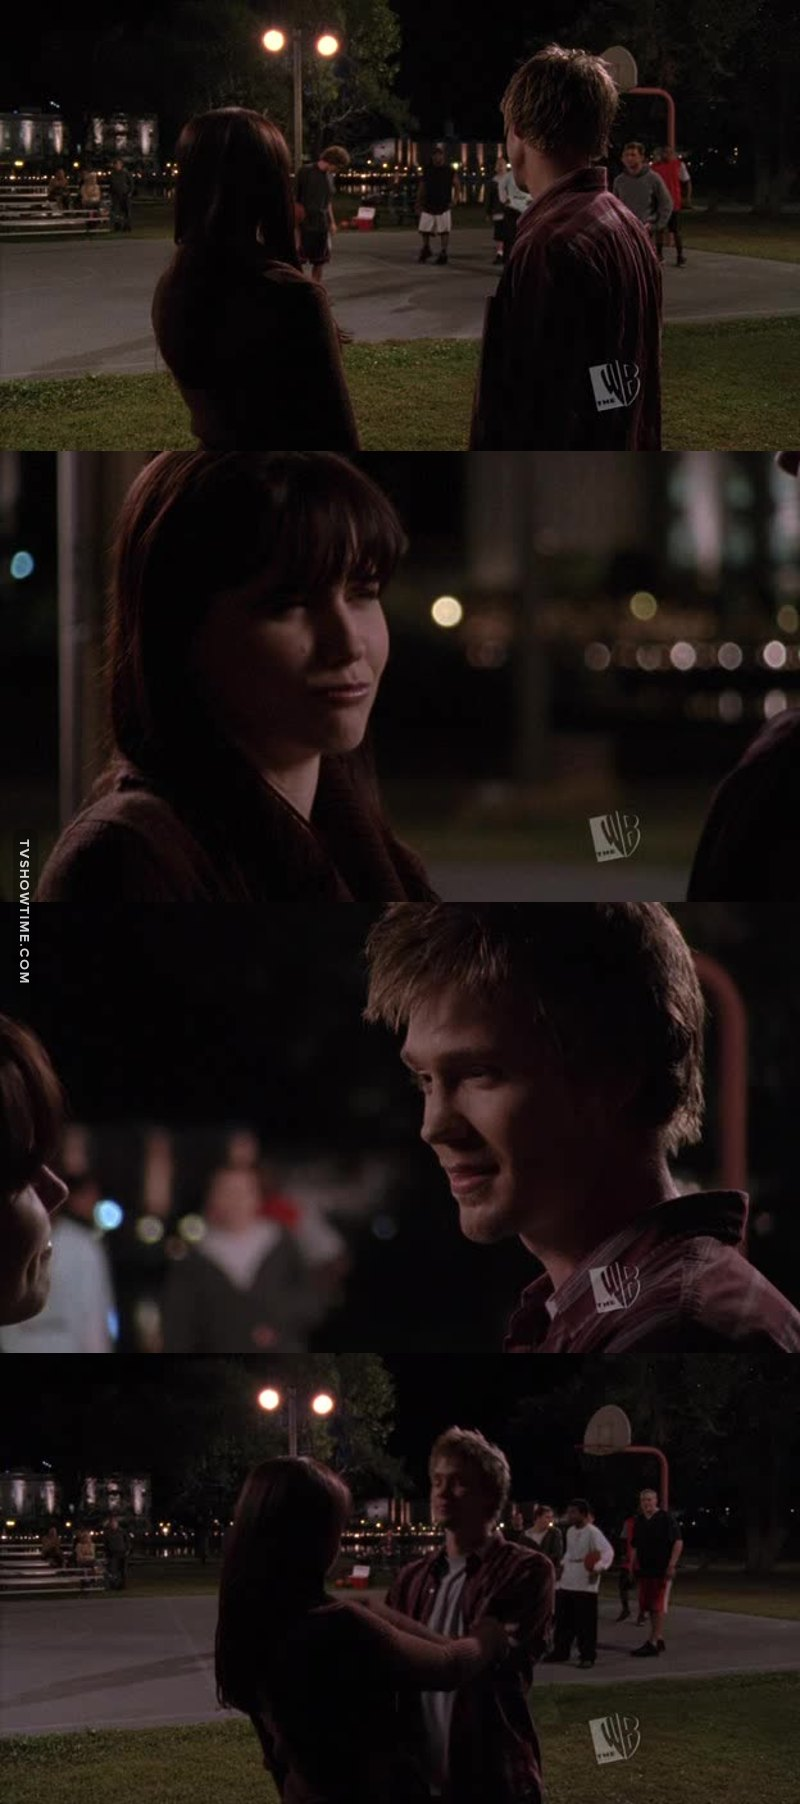 Lucas: This is my world Brooke. Or at least it used to be. Brooke: I have been here before you know. Lucas: I know but I just never told you what this place is to me. It's not just a court, it's where I came from it's where I belong. It's my world. Brooke: So do I get to be part of this world? Lucas: The biggest part.  #Brucas forever ❤❤❤❤